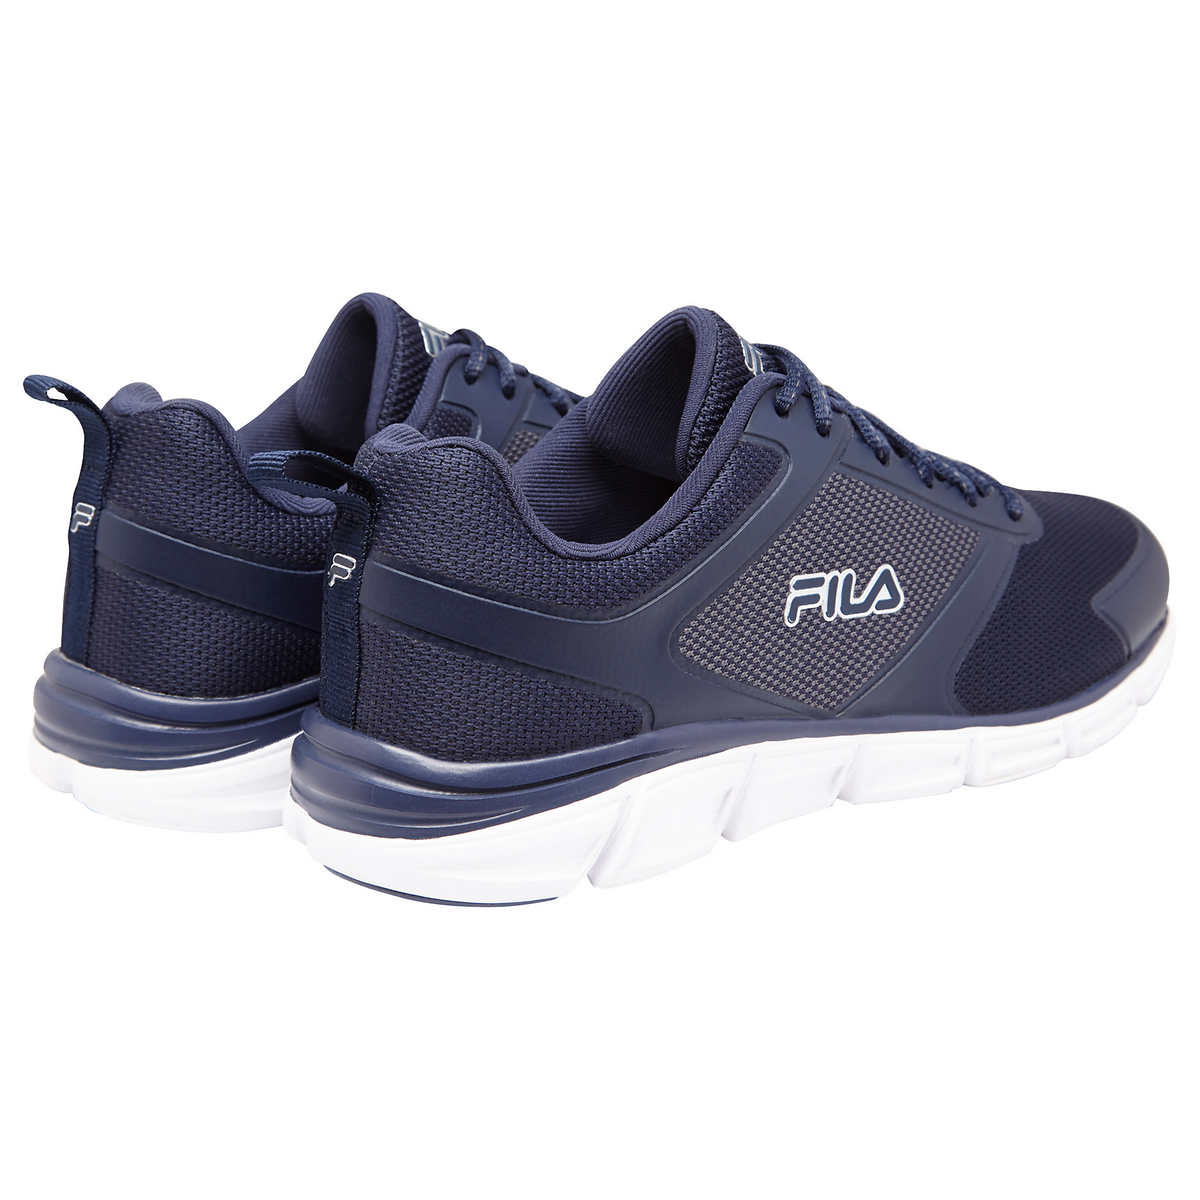 3e69a17c3 FILA Men s Memory Foam SteelSprint Athletic Shoes